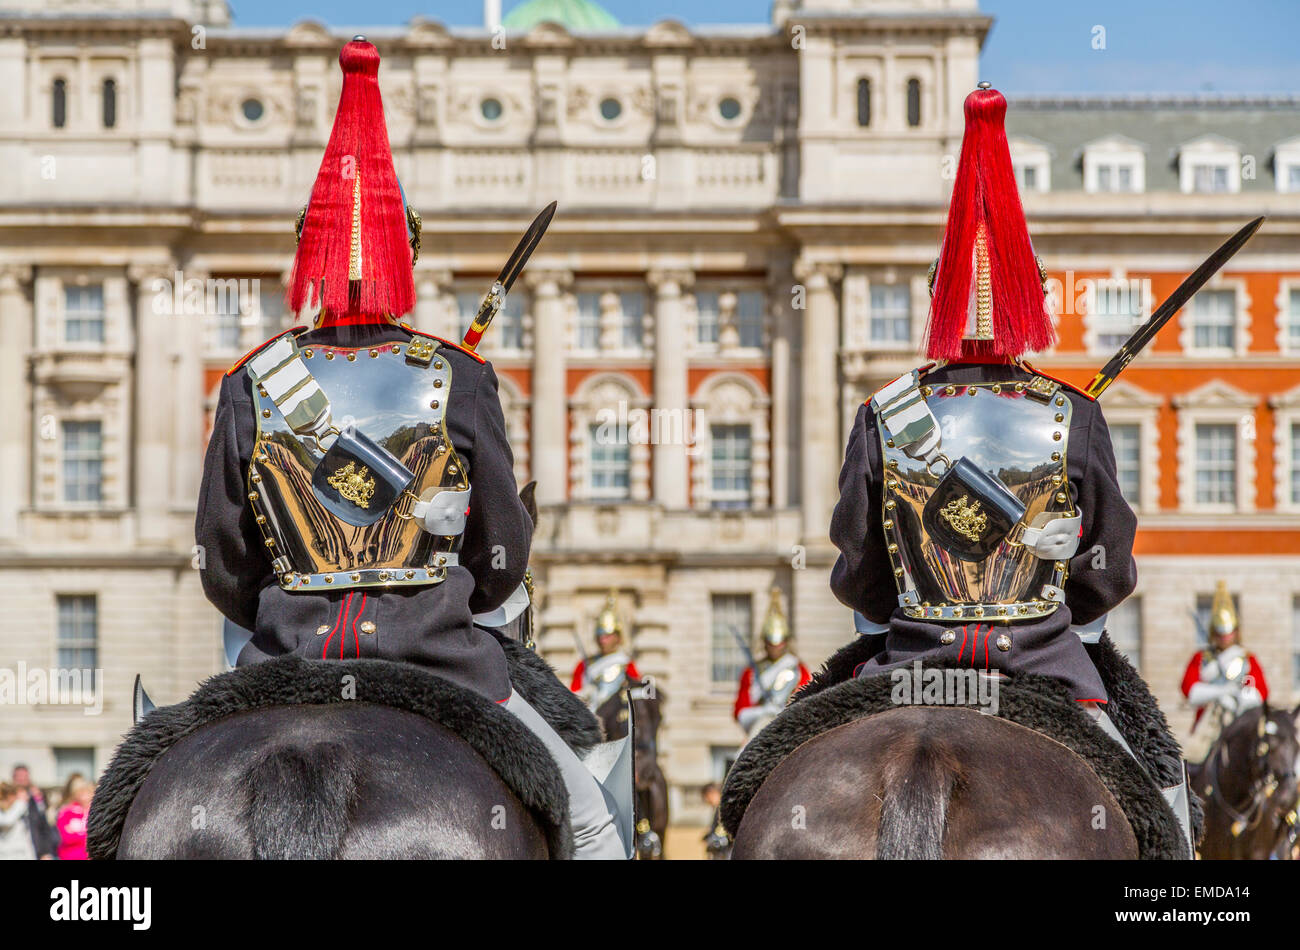 An image of the Blue & Royals on the Parade Ground at Horse Guards Parade, London England UK - Stock Image